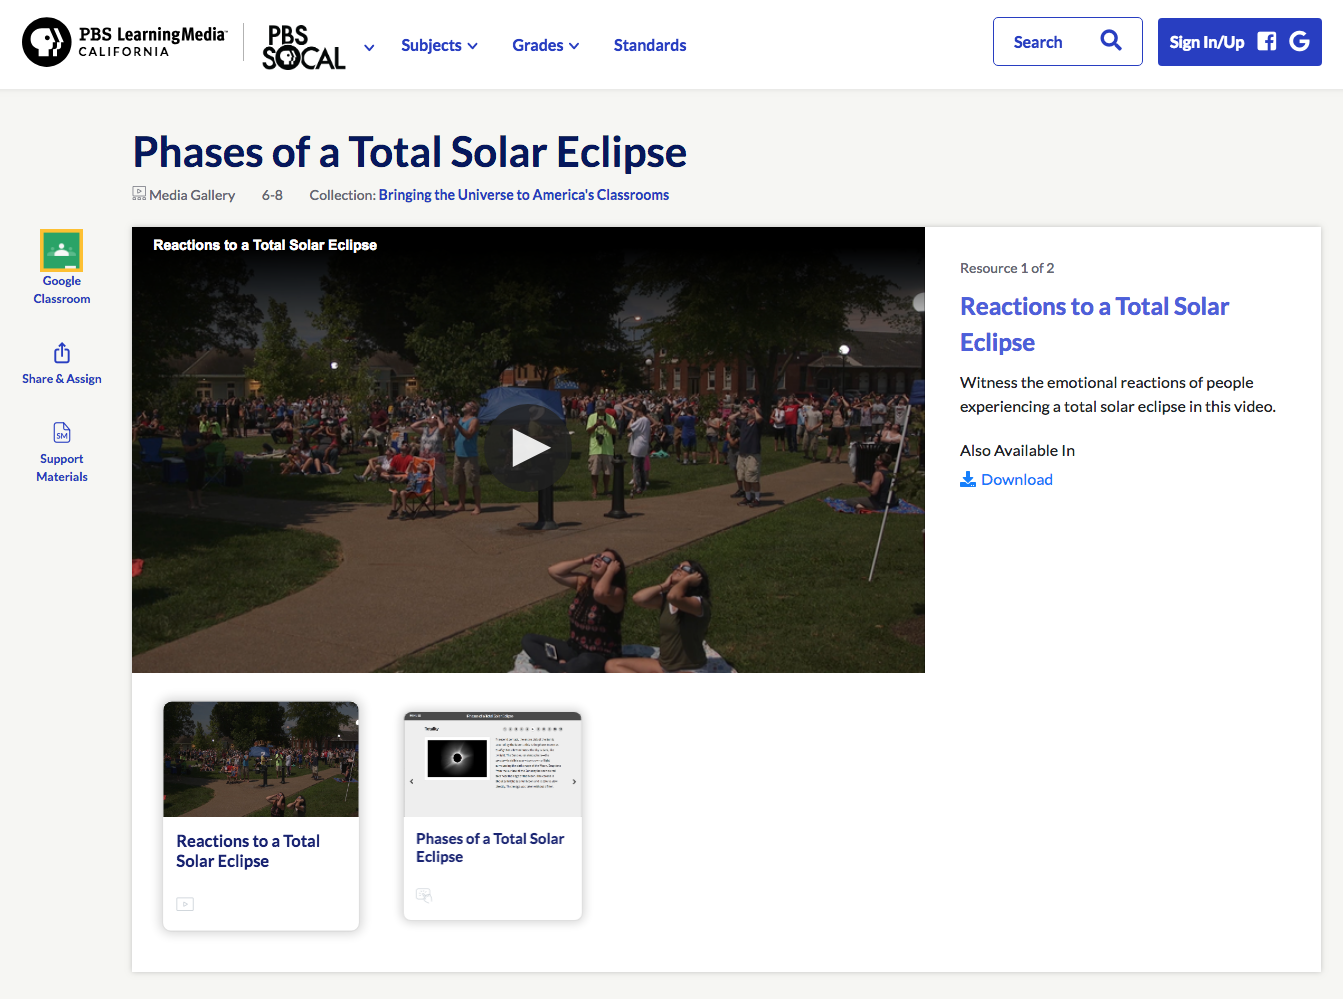 Phases of a Total Solar Eclipse Video